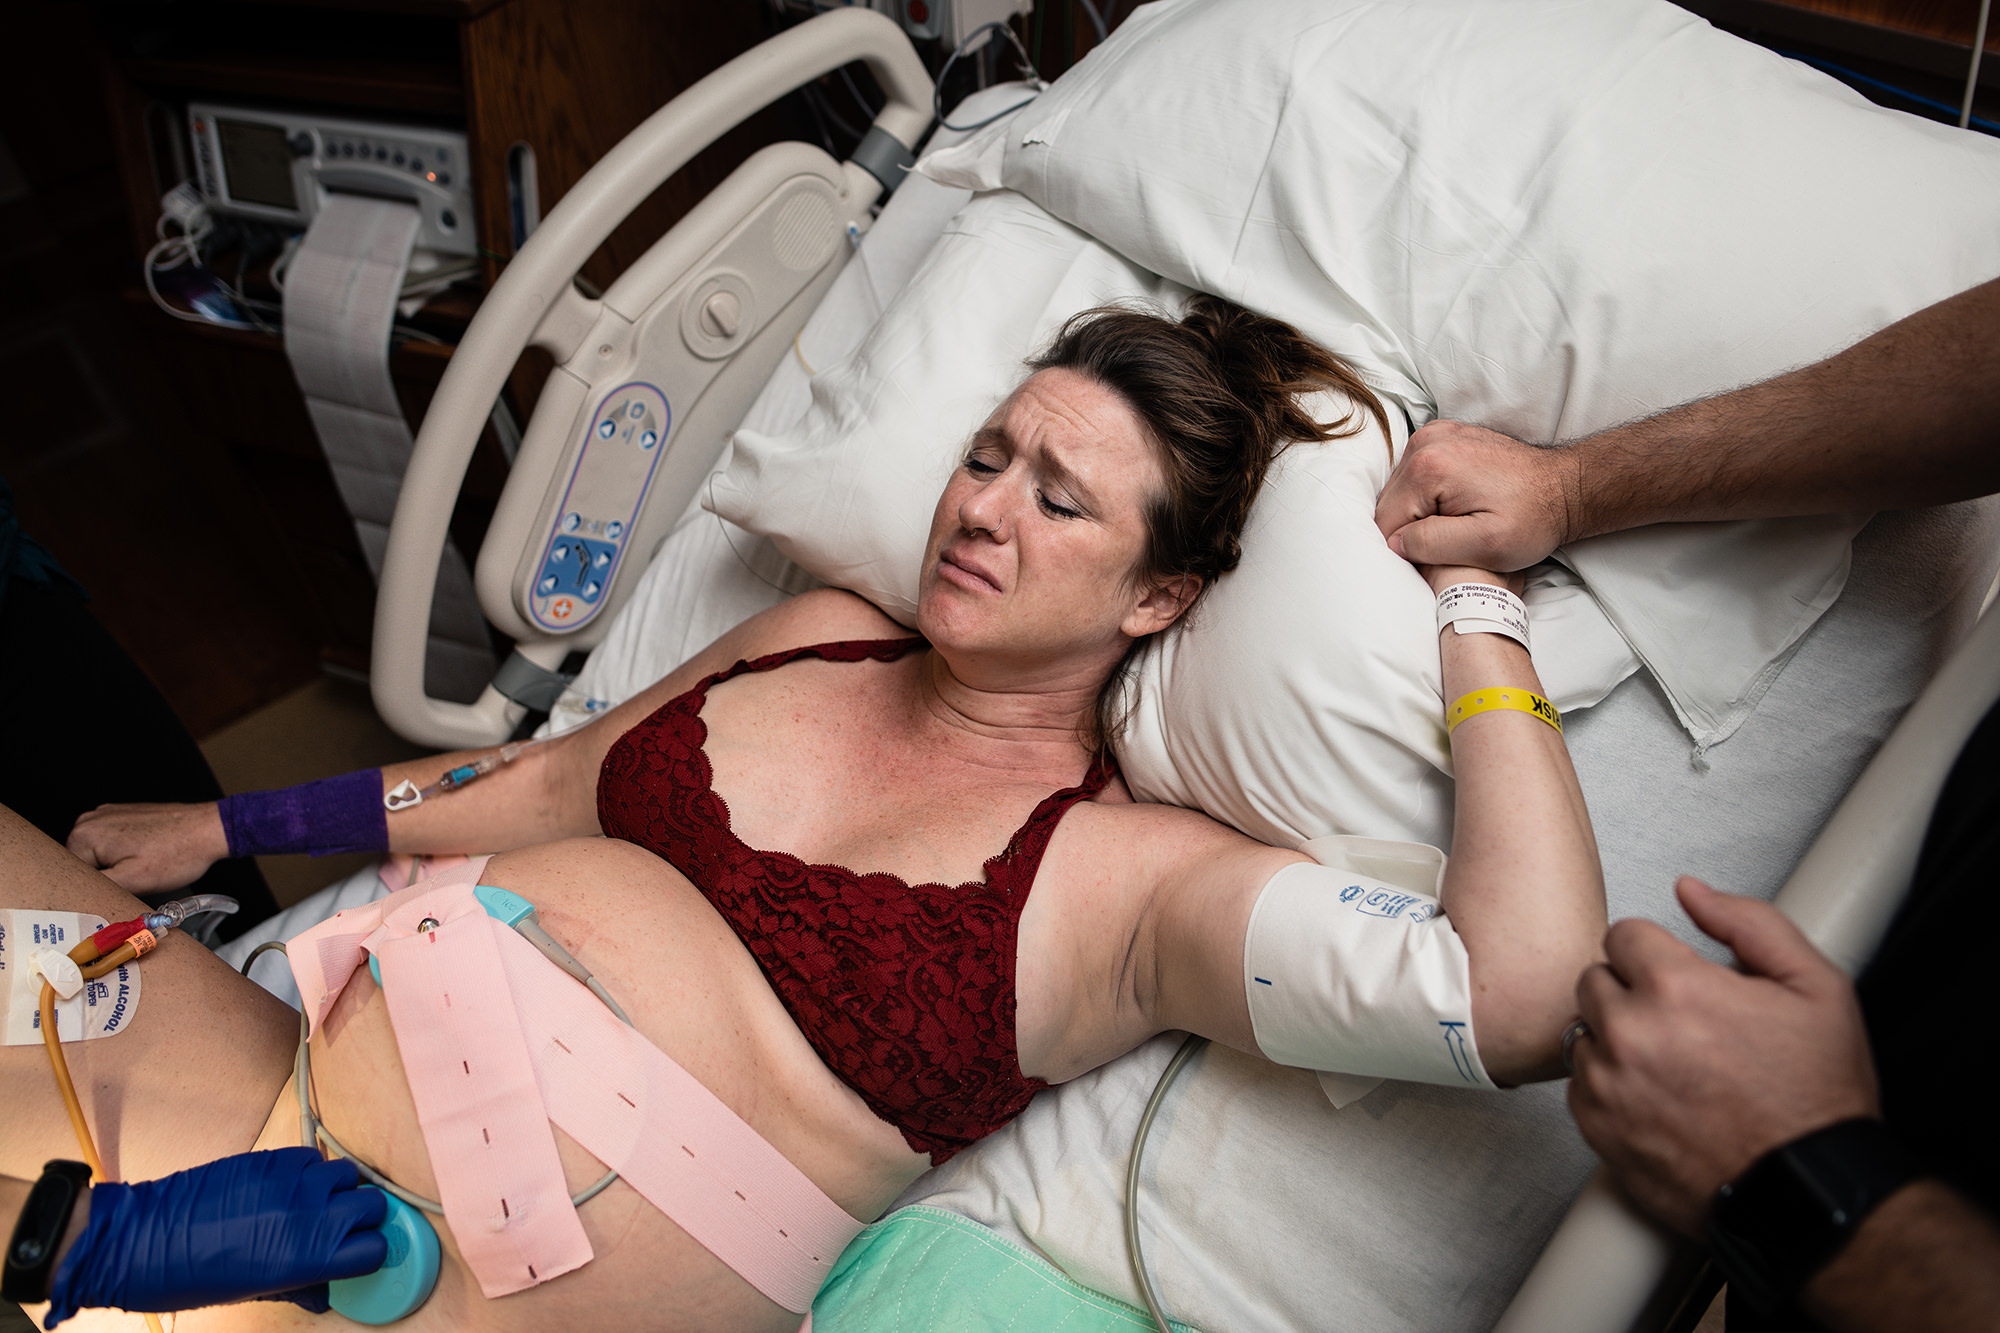 4 emotional mom about to push austin birth photography.jpg